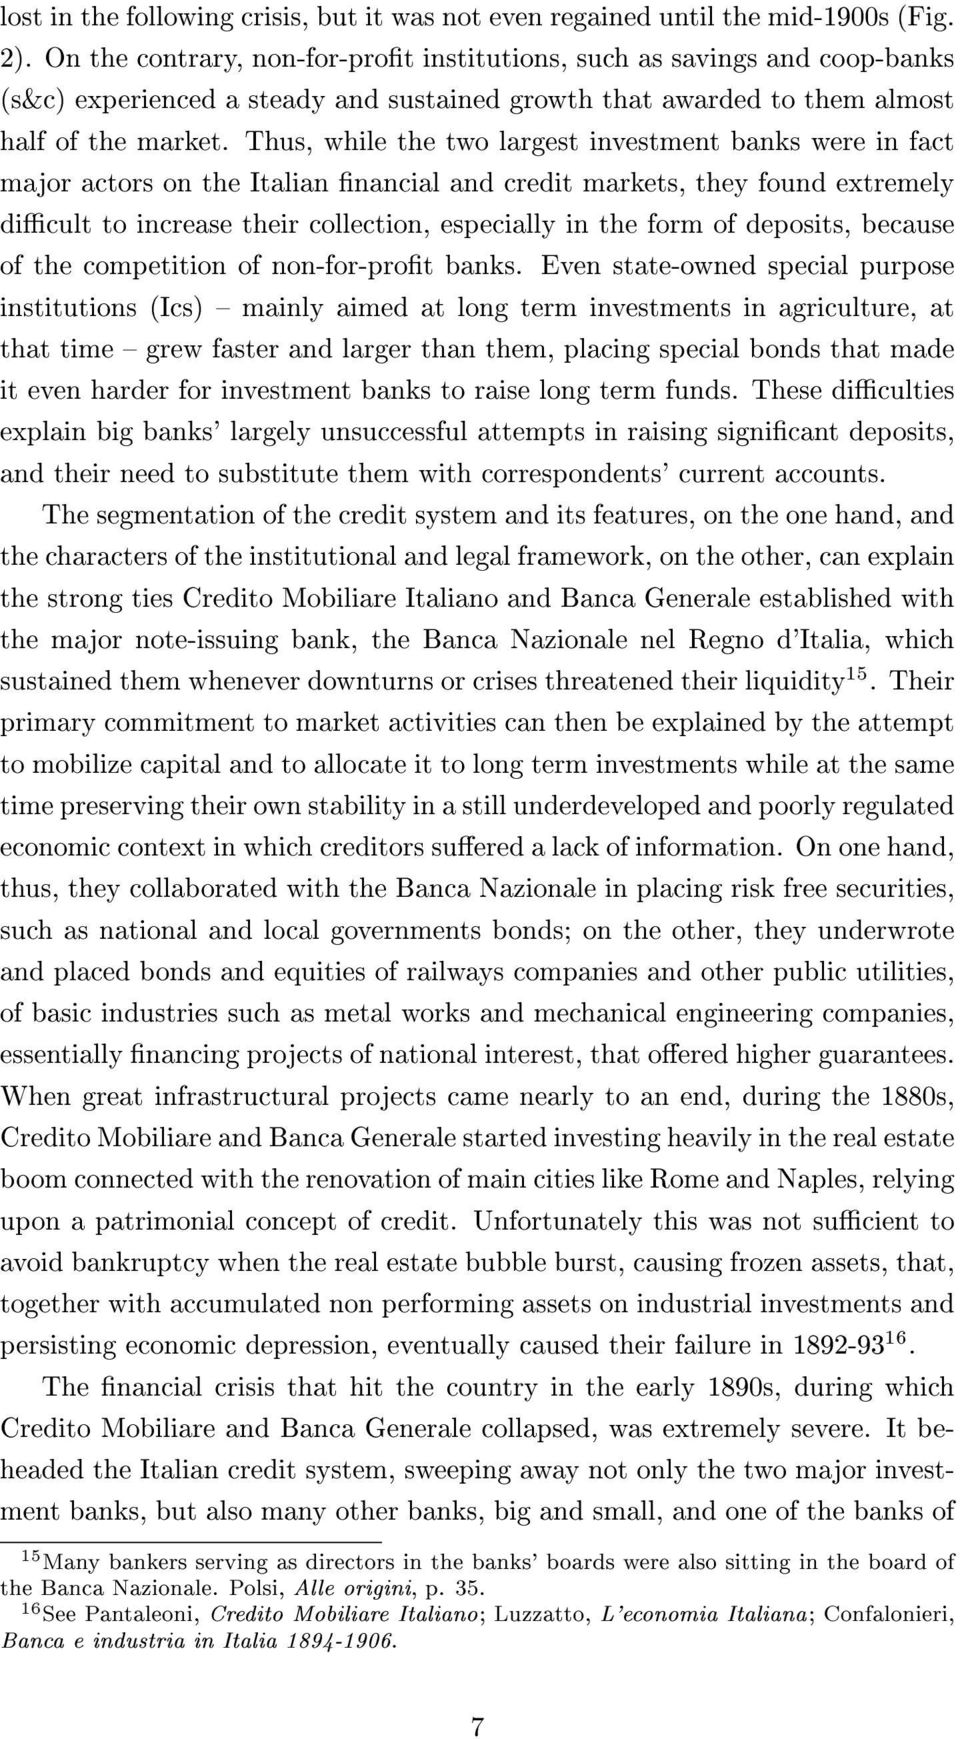 Thus, while the two largest investment banks were in fact major actors on the Italian nancial and credit markets, they found extremely dicult to increase their collection, especially in the form of